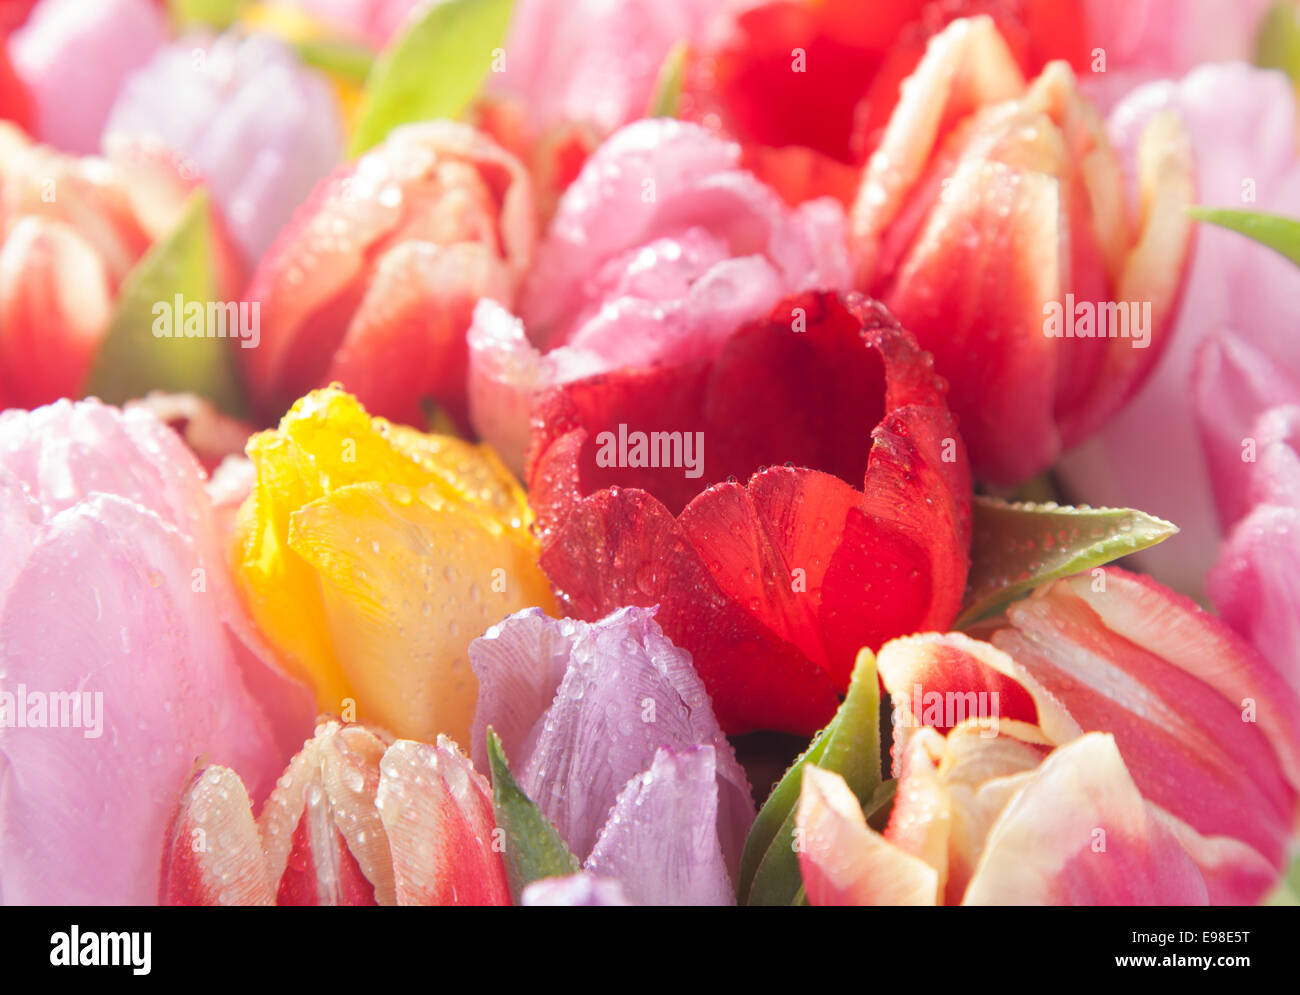 Colourful spring tulips showcasing natures beauty in a closeup seasonal background of delicate blooms - Stock Image